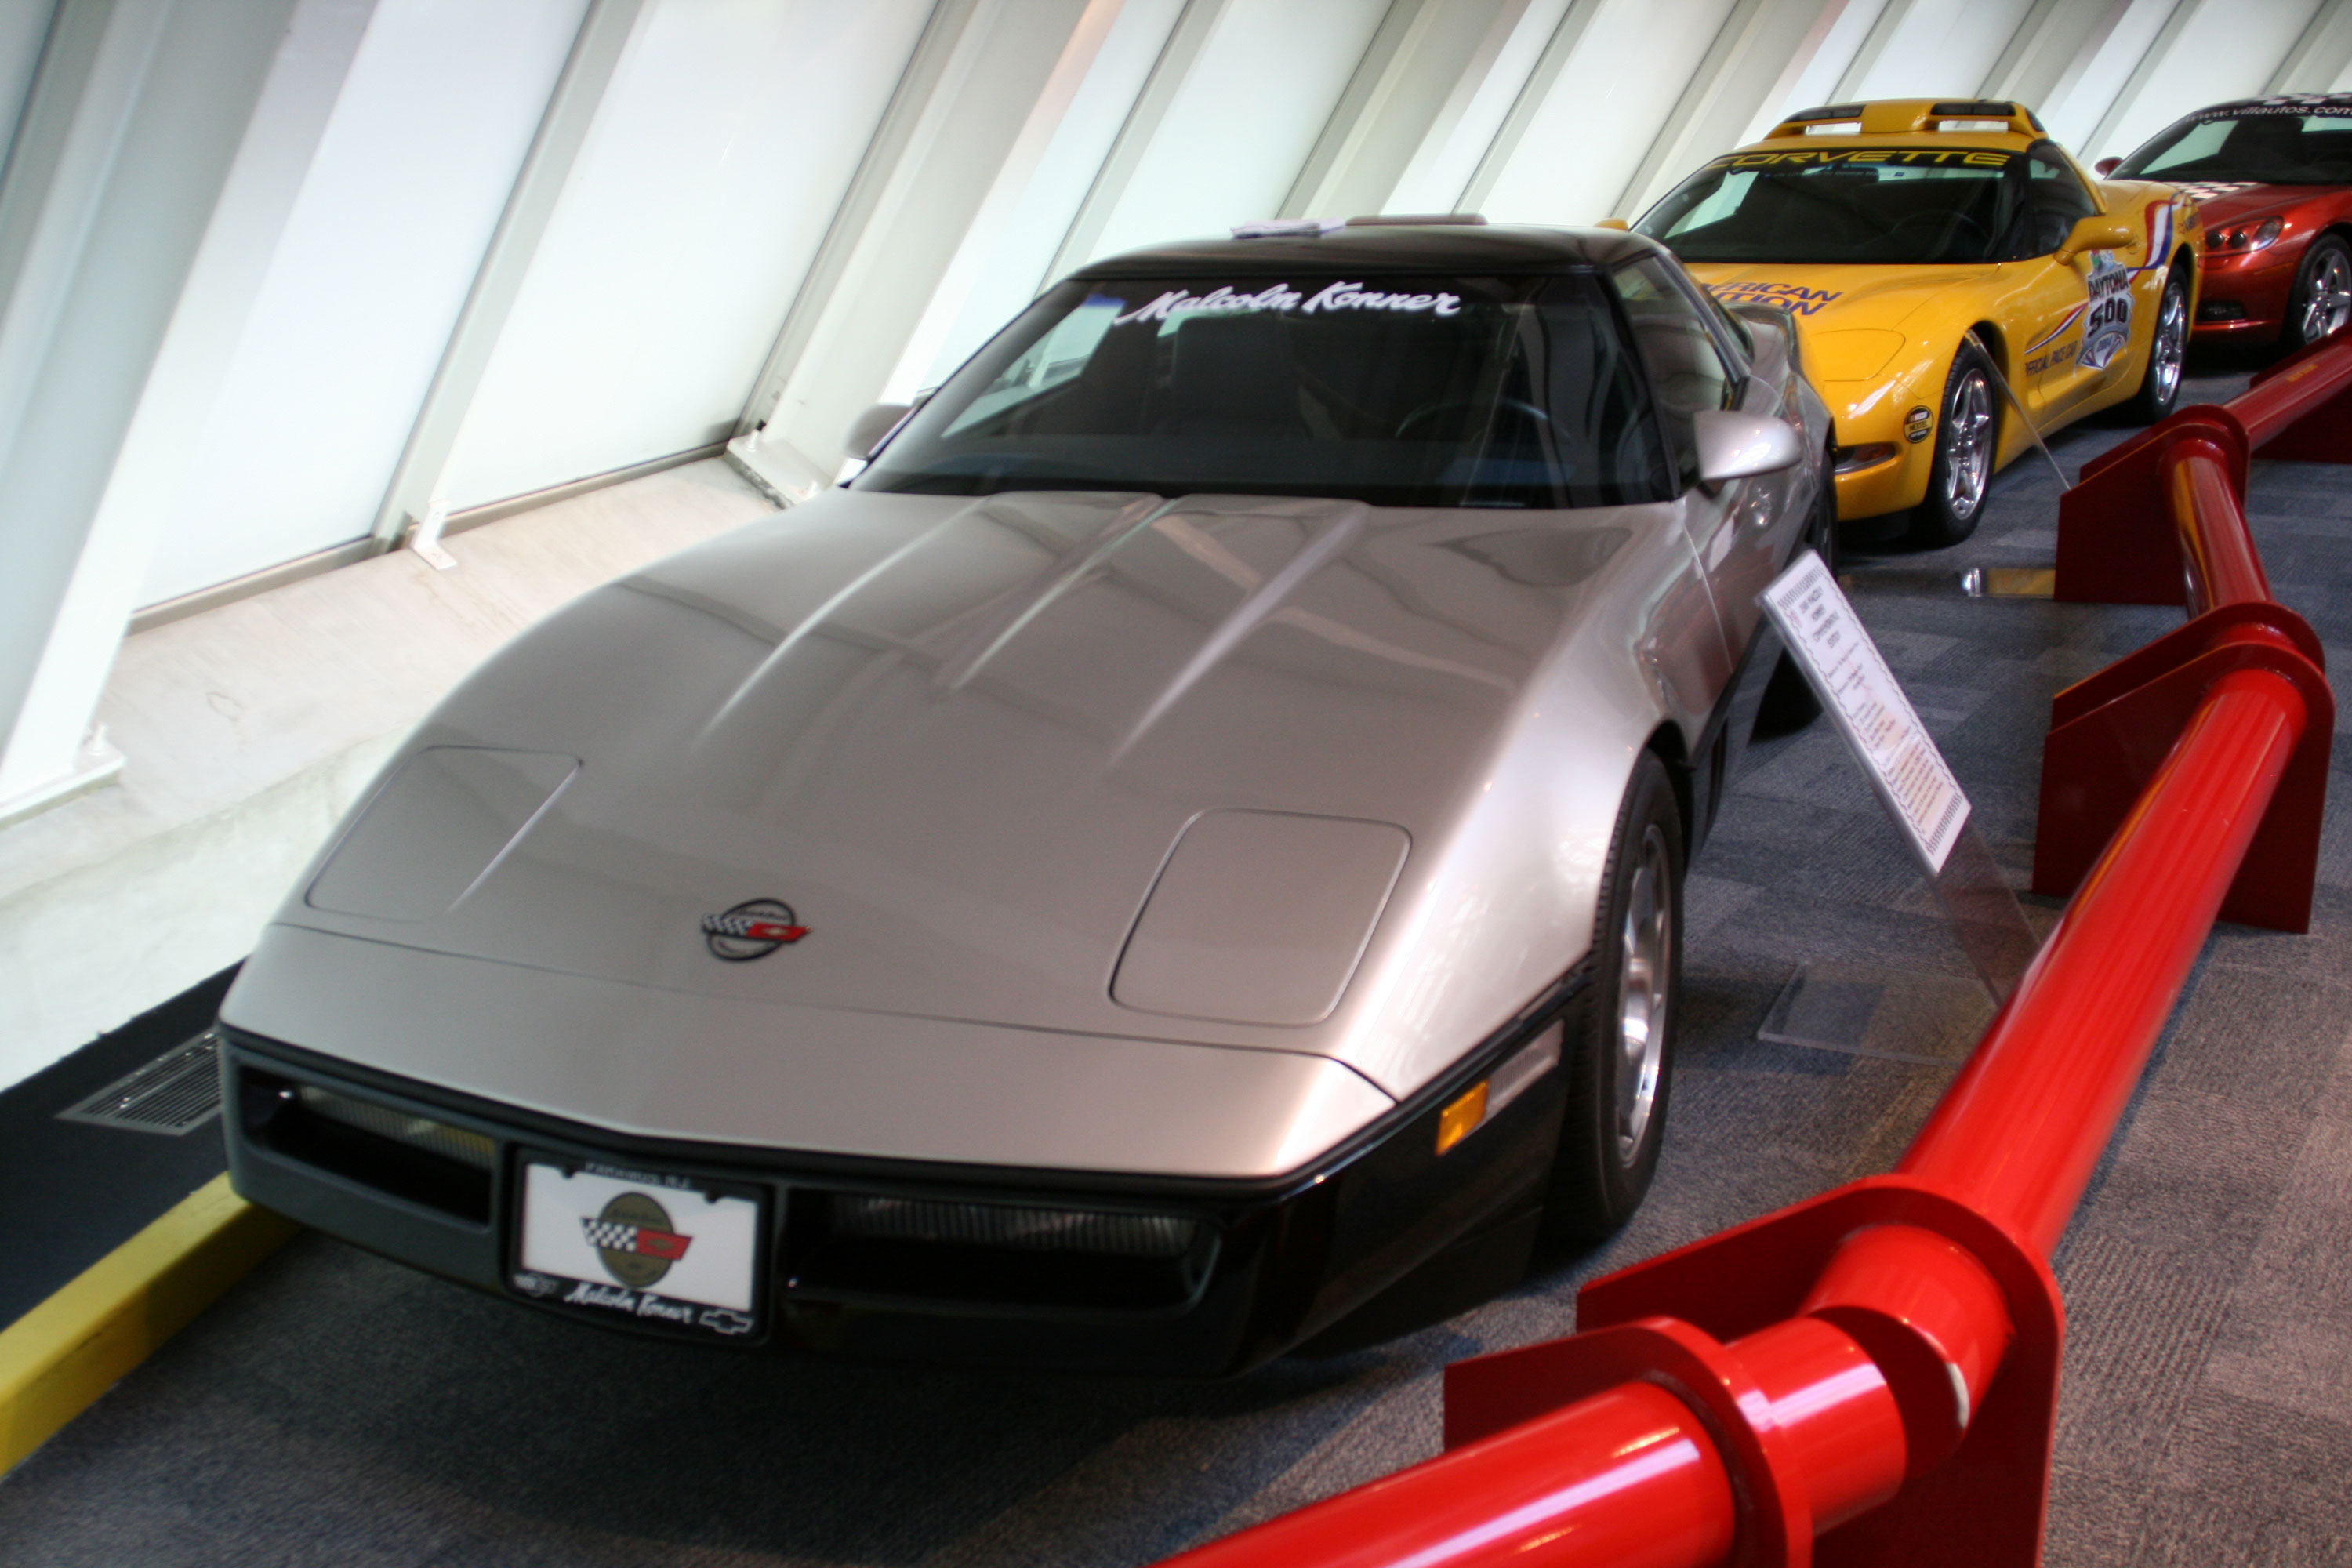 A 1986 Malcolm Konner Edition Corvette at the National Corvette Museum in Bowling Green, Kentucky.